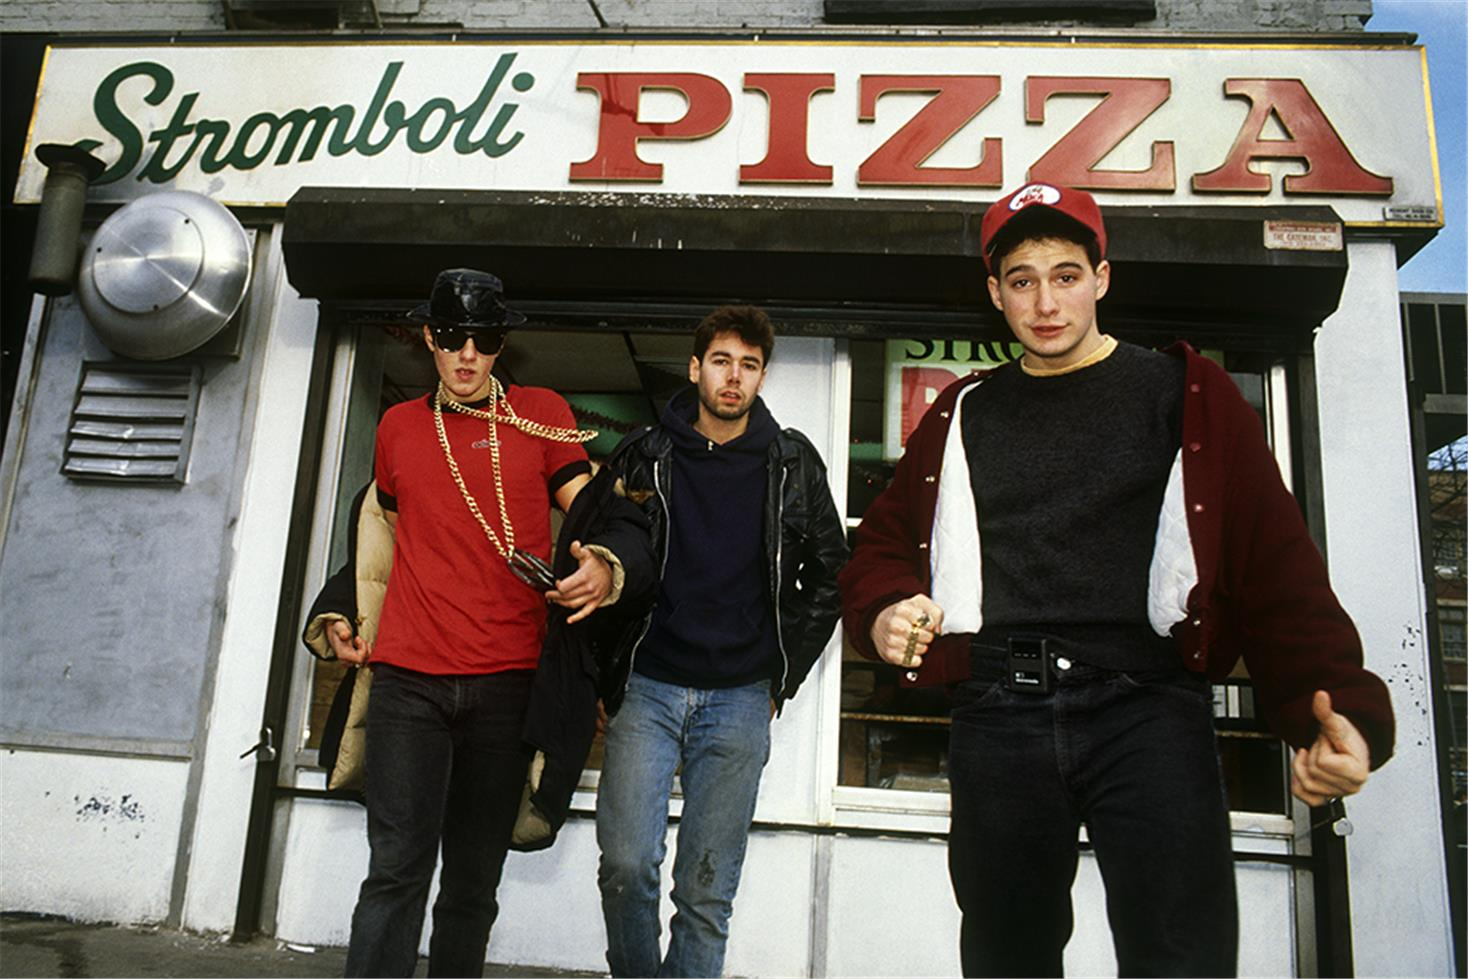 The Beastie Boys have a new book and they're going on tour with it!